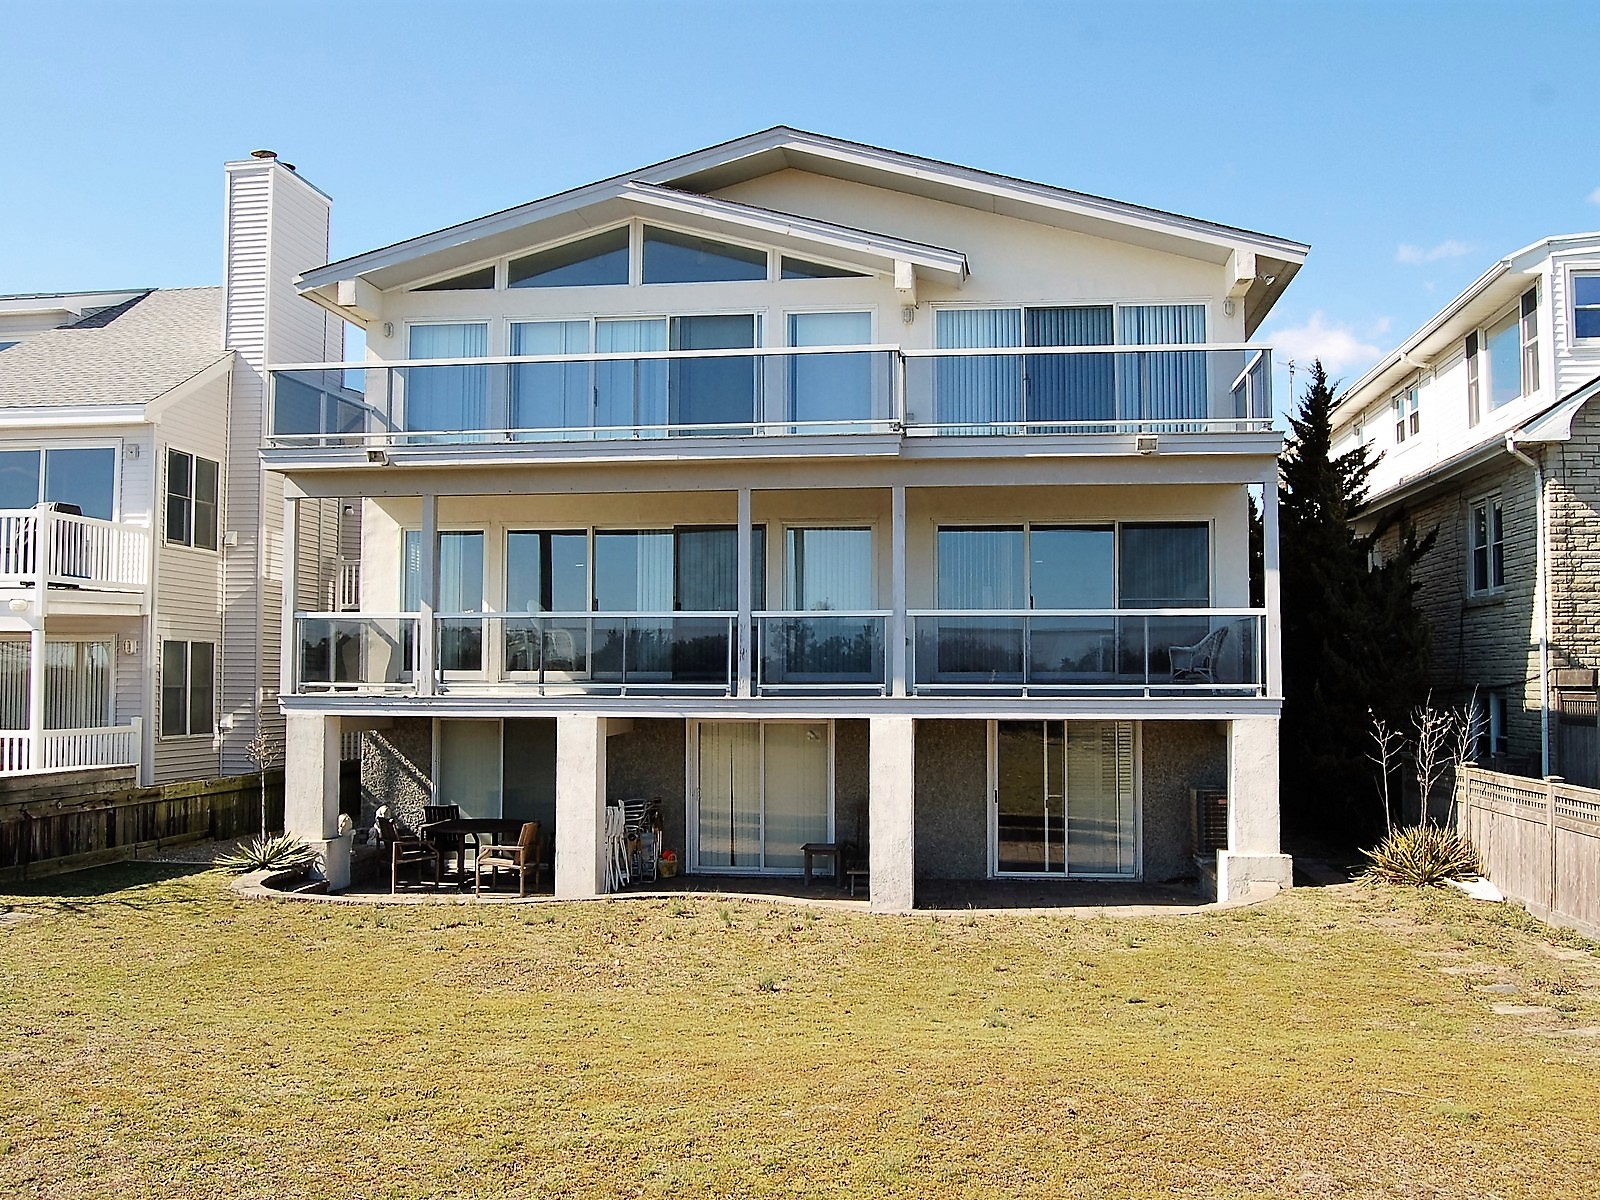 Condominium for Sale at First Floor Beachfront Condo 2912 Wesley Avenue First Floor Ocean City, New Jersey 08226 United States